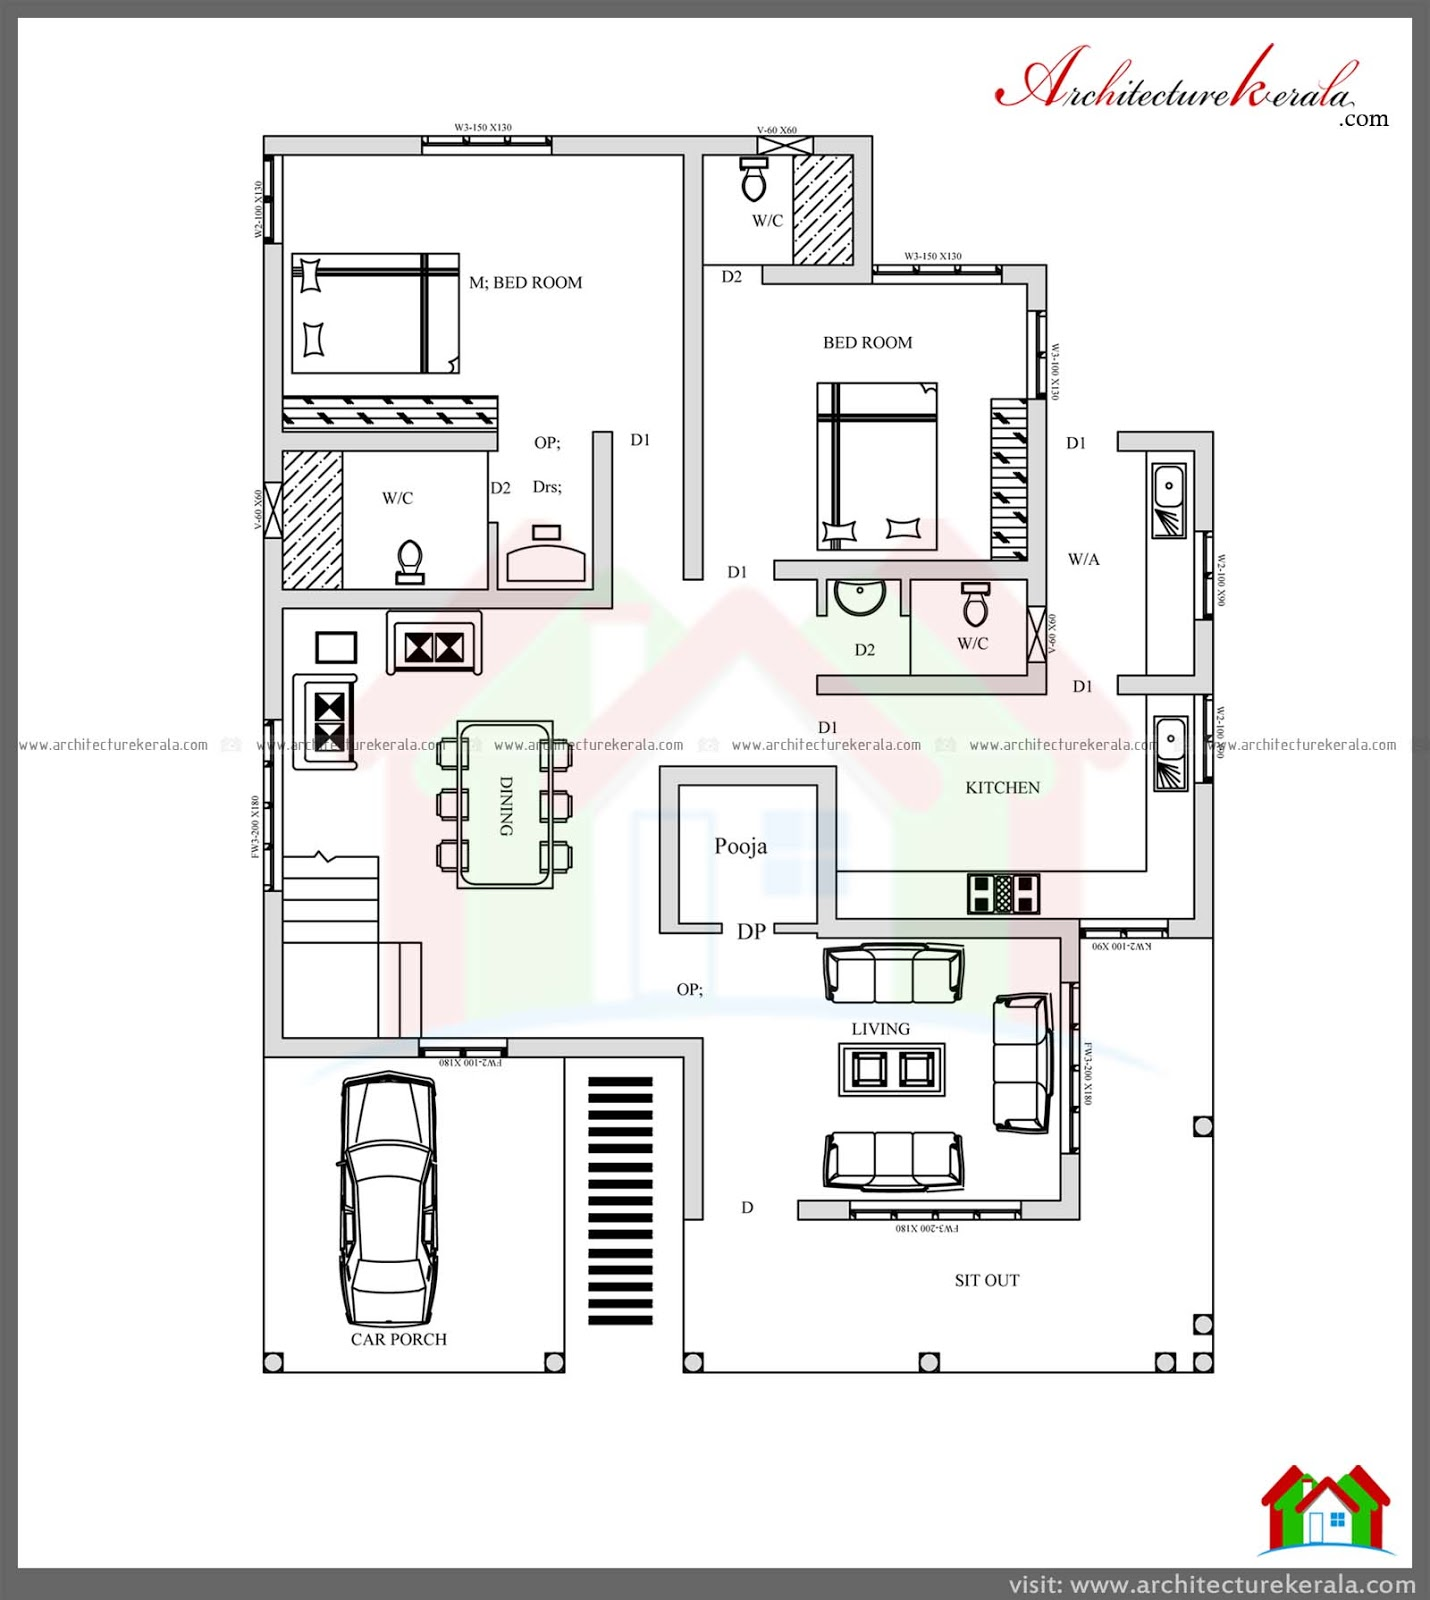 4 bed house plan with pooja room architecture kerala for 2 bedroom house plans in kerala